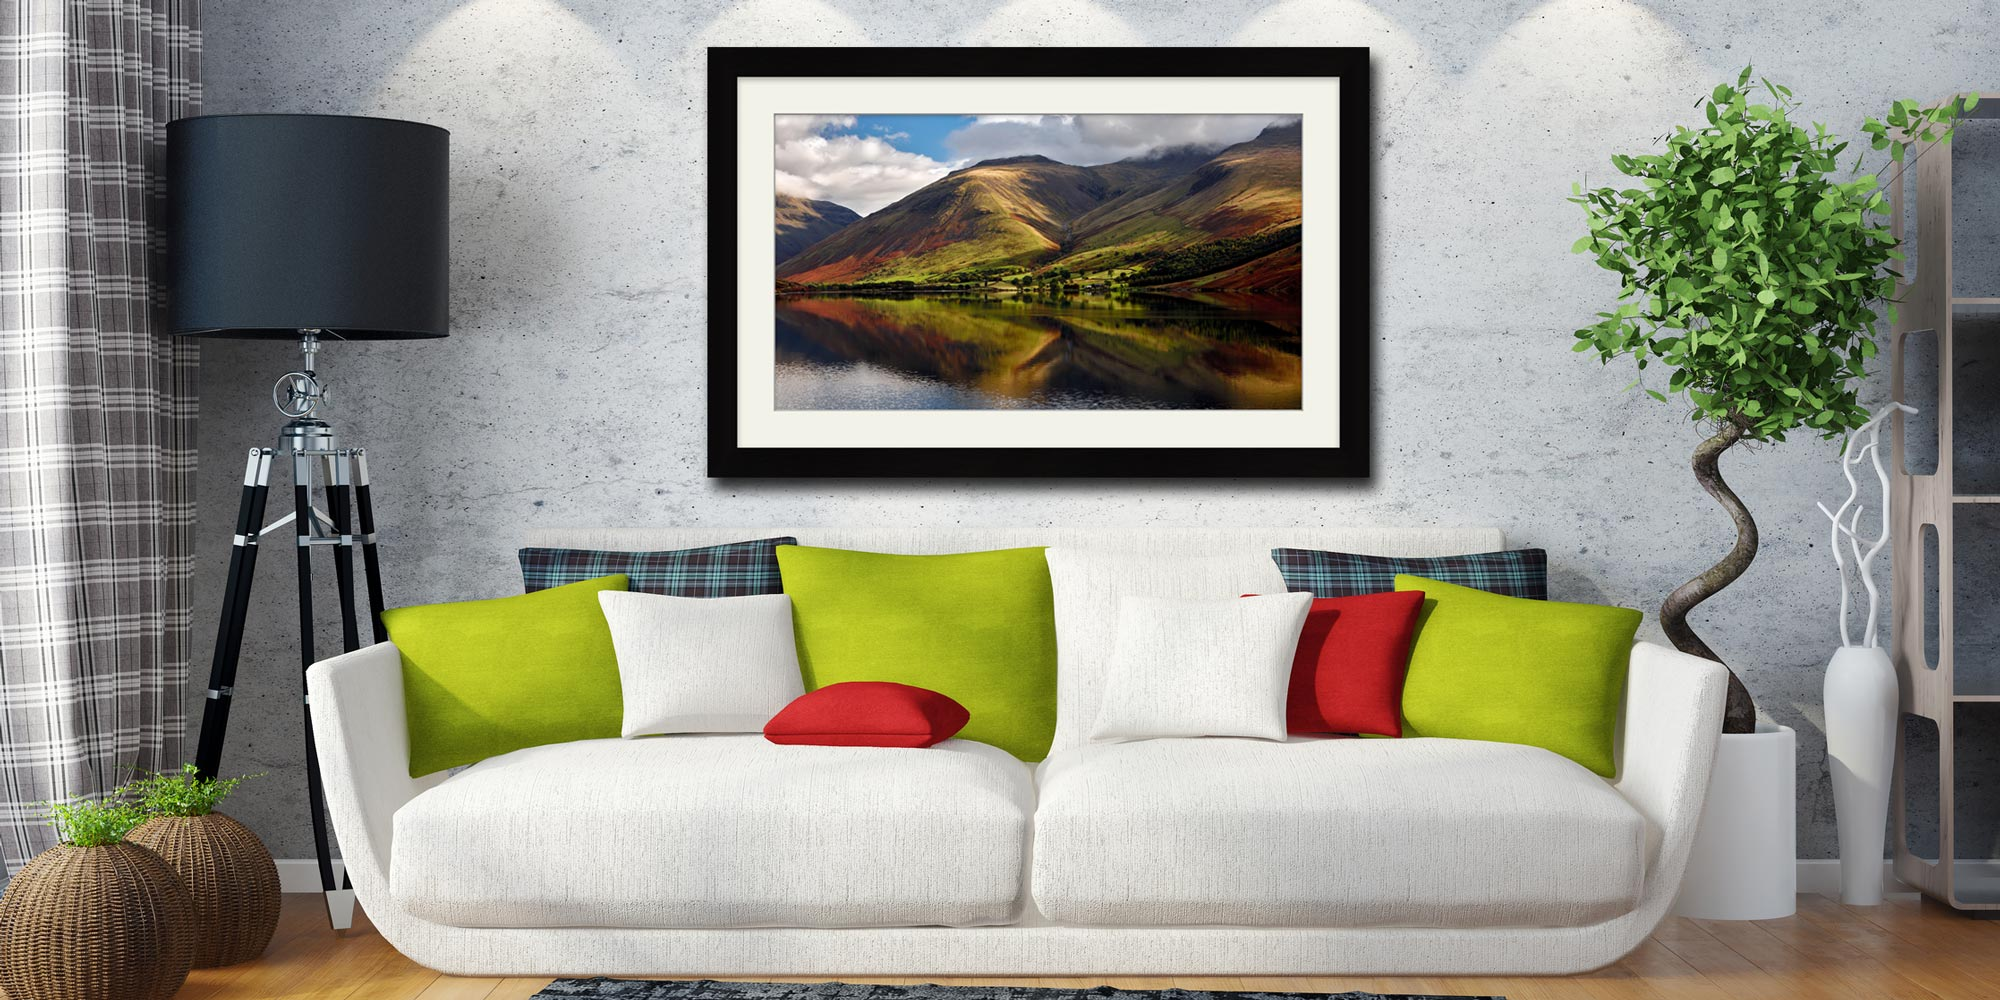 Green Fells of Wasdale - Framed Print with Mount on Wall